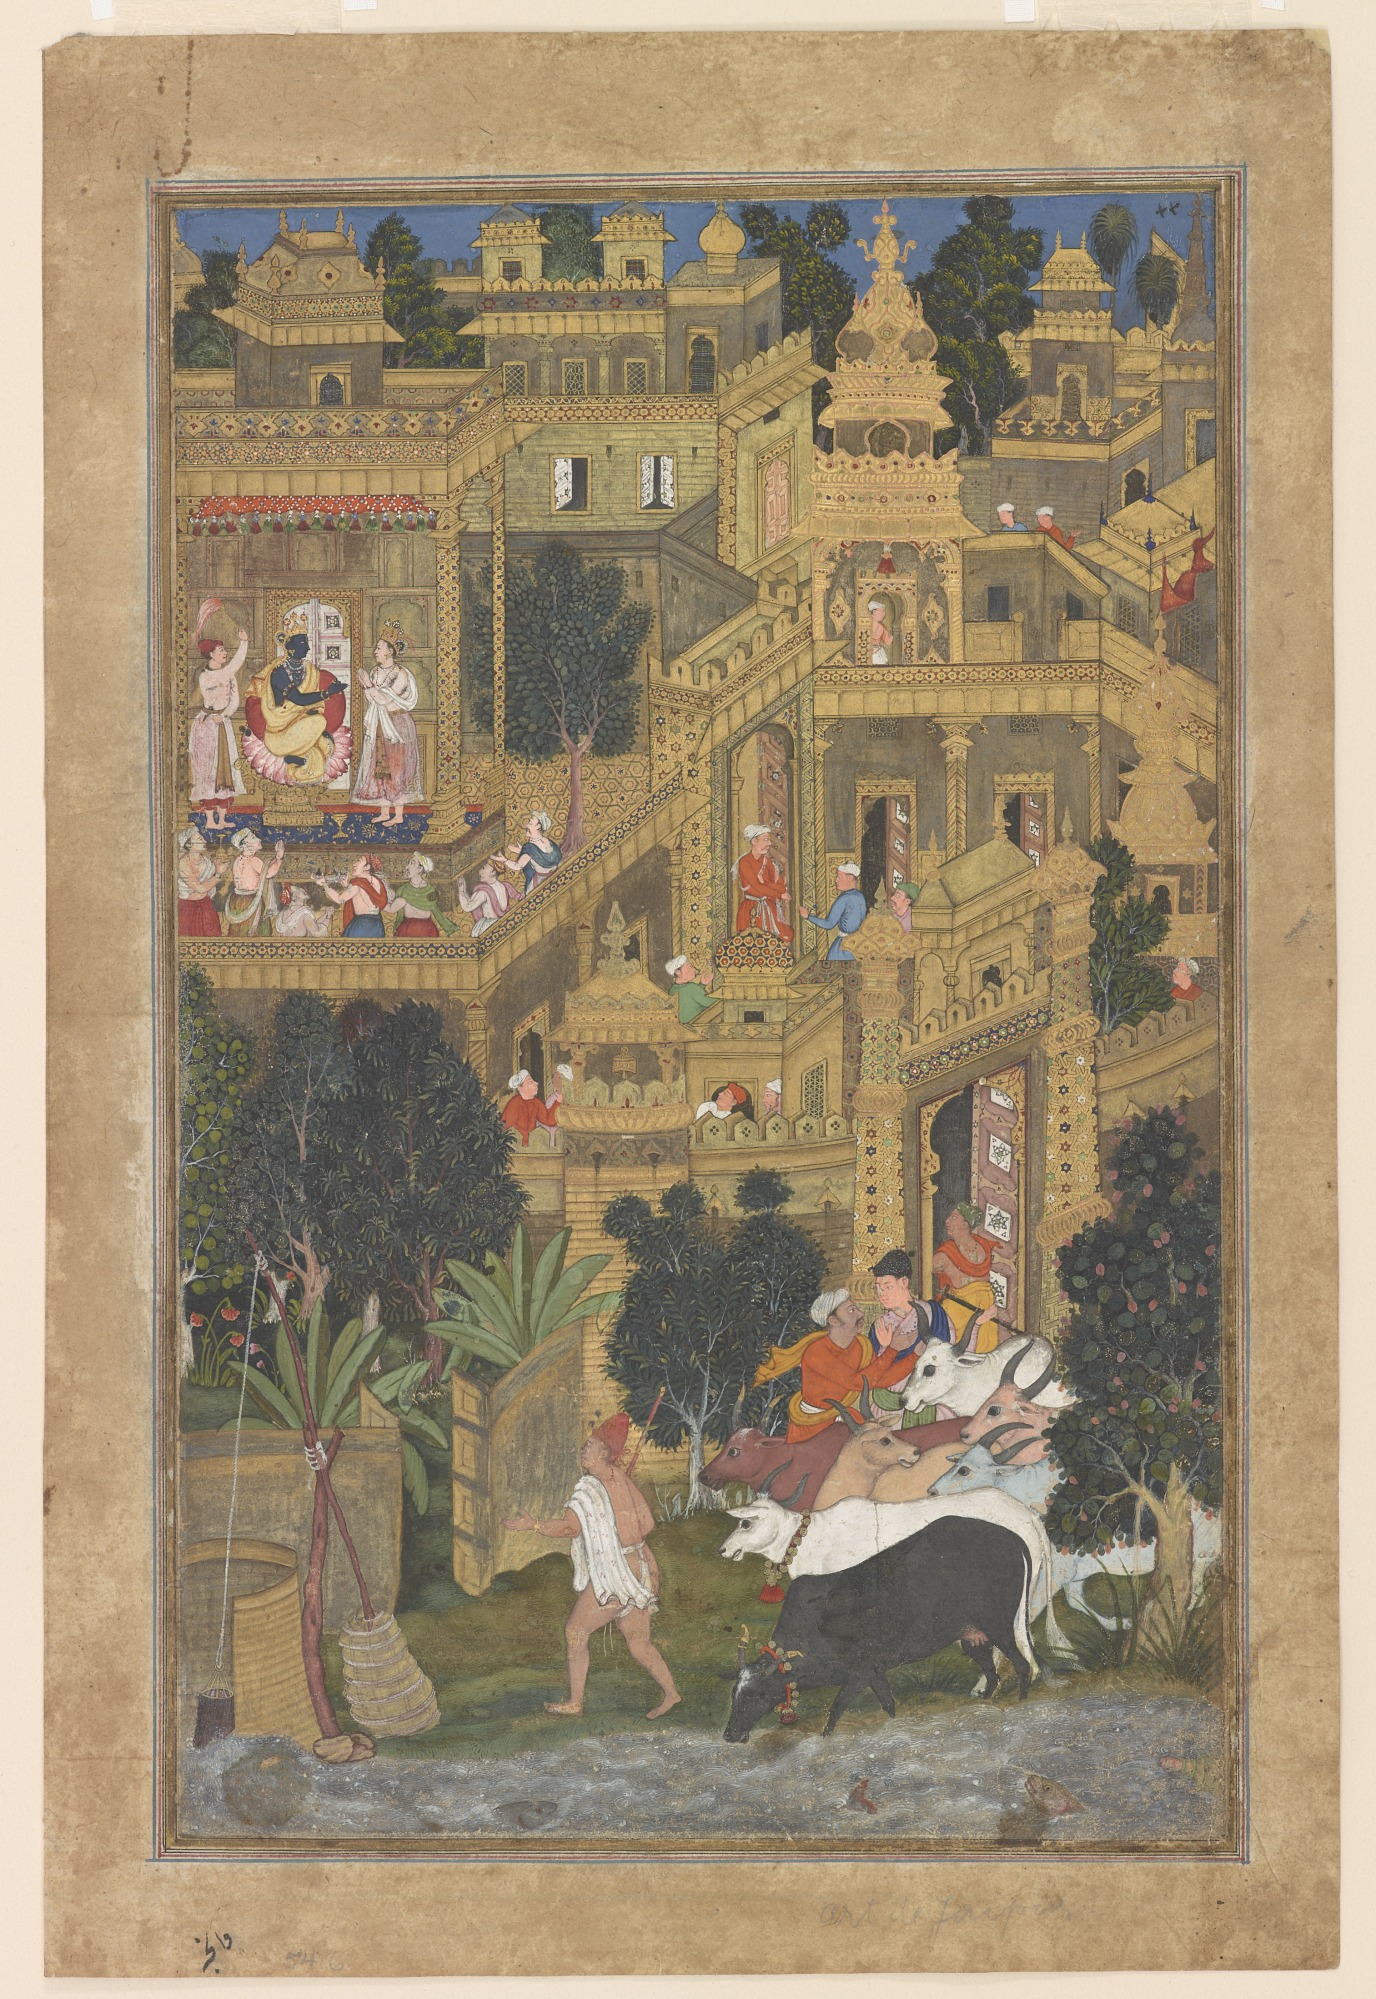 : Krishna and the Golden City of Dwarkafrom the Harivamsha (Geneology of Vishnu)